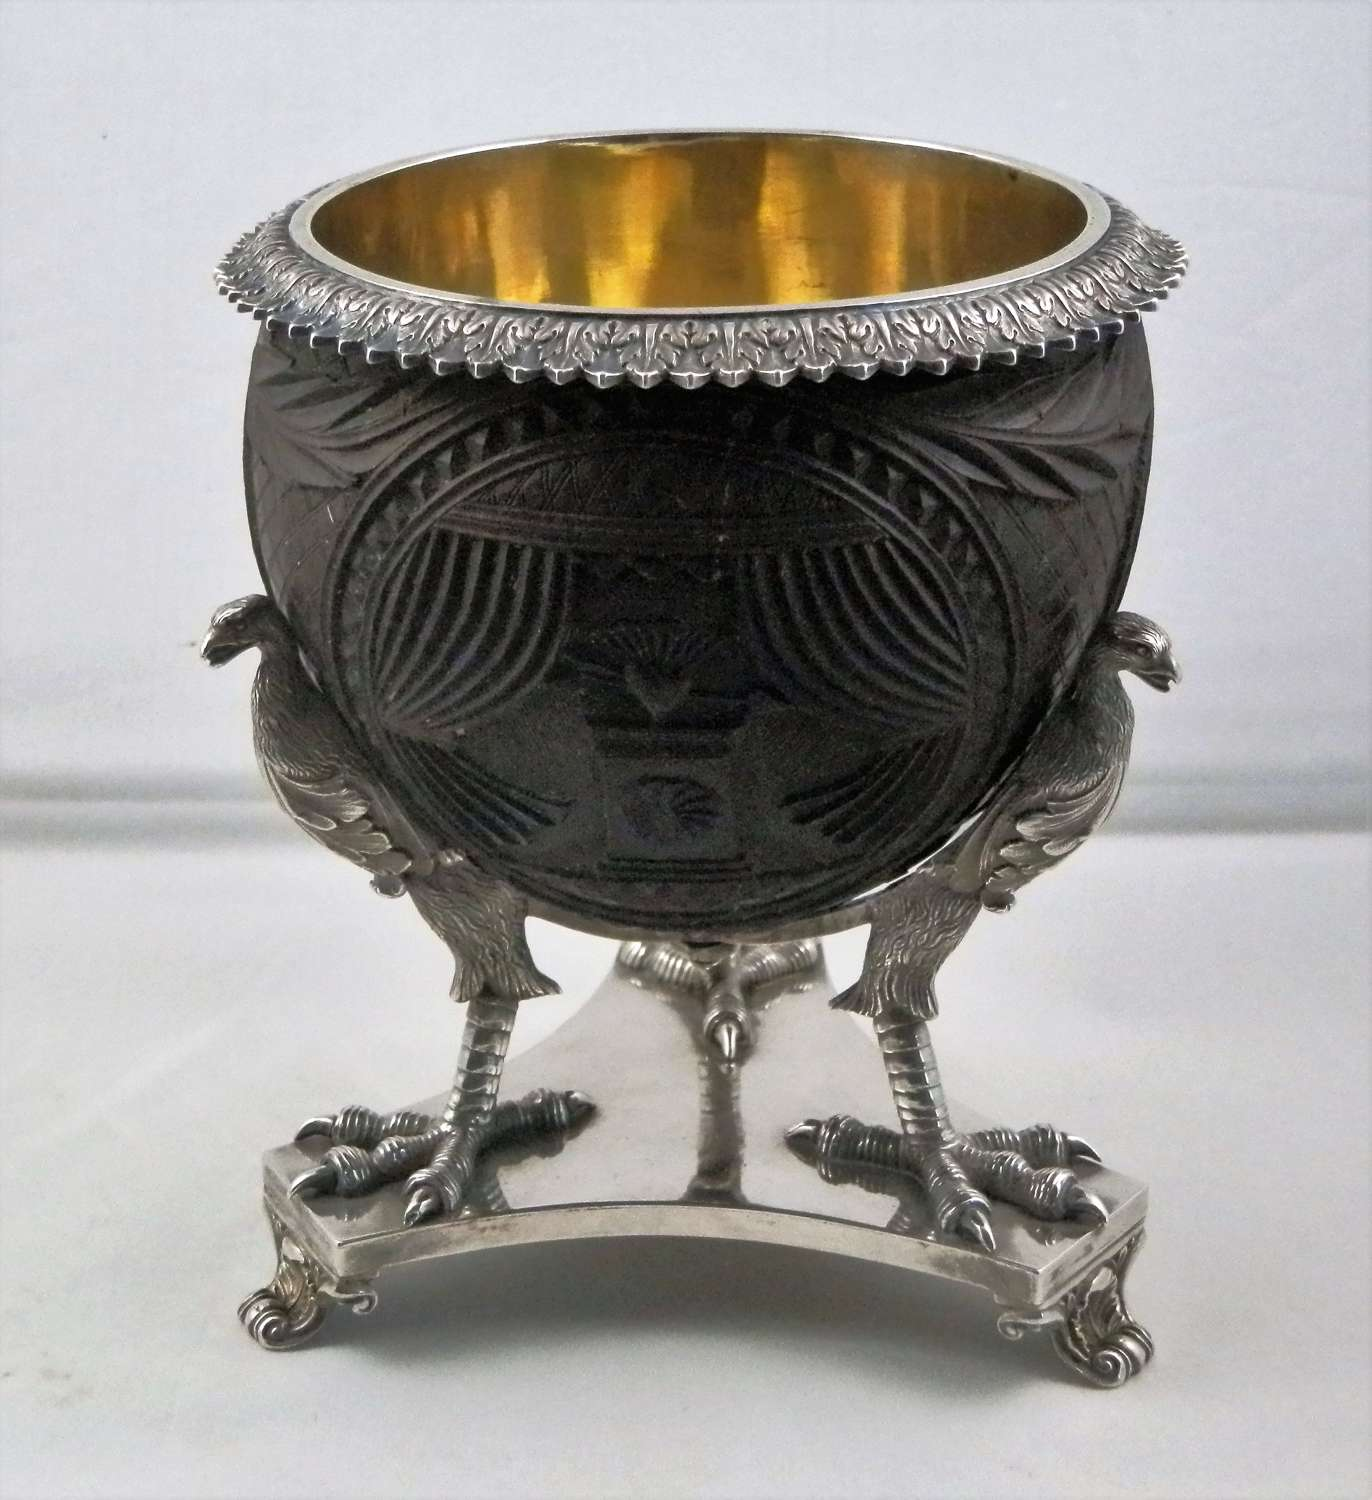 George IV coconut and silver cup. London 1827